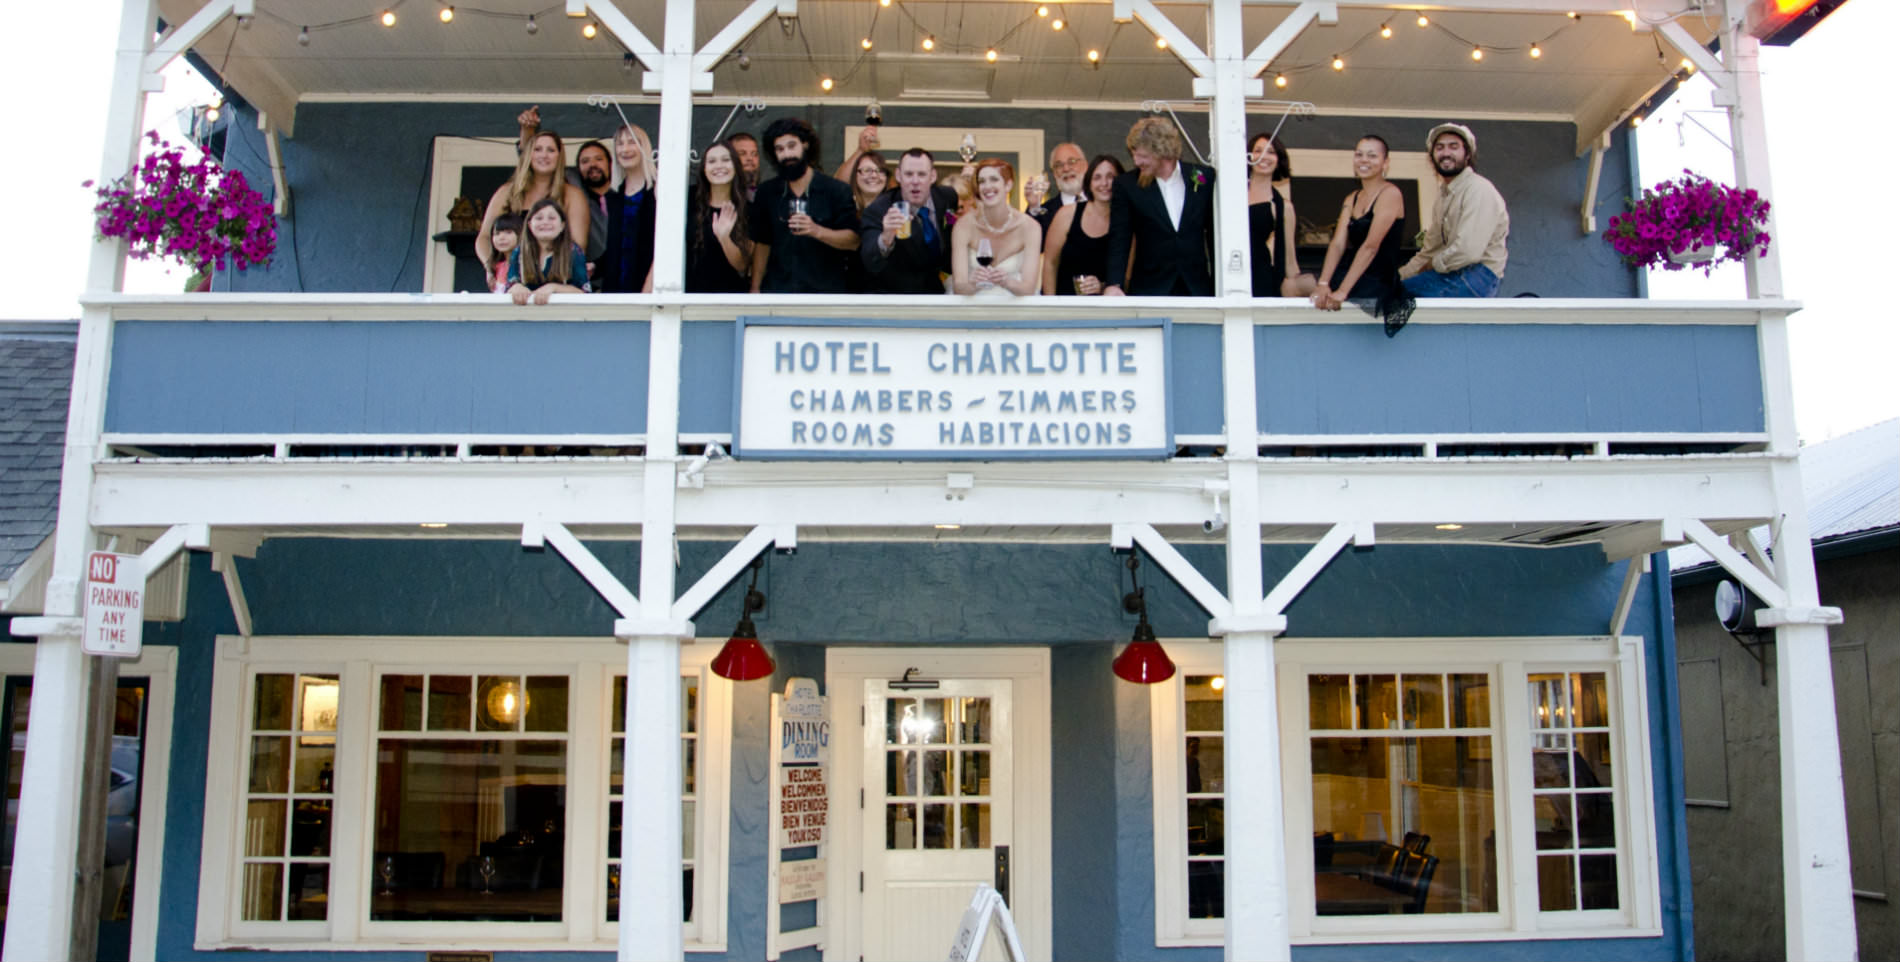 A large wedding party outside on the balcony of Hotel Charlotte, a blue and white building